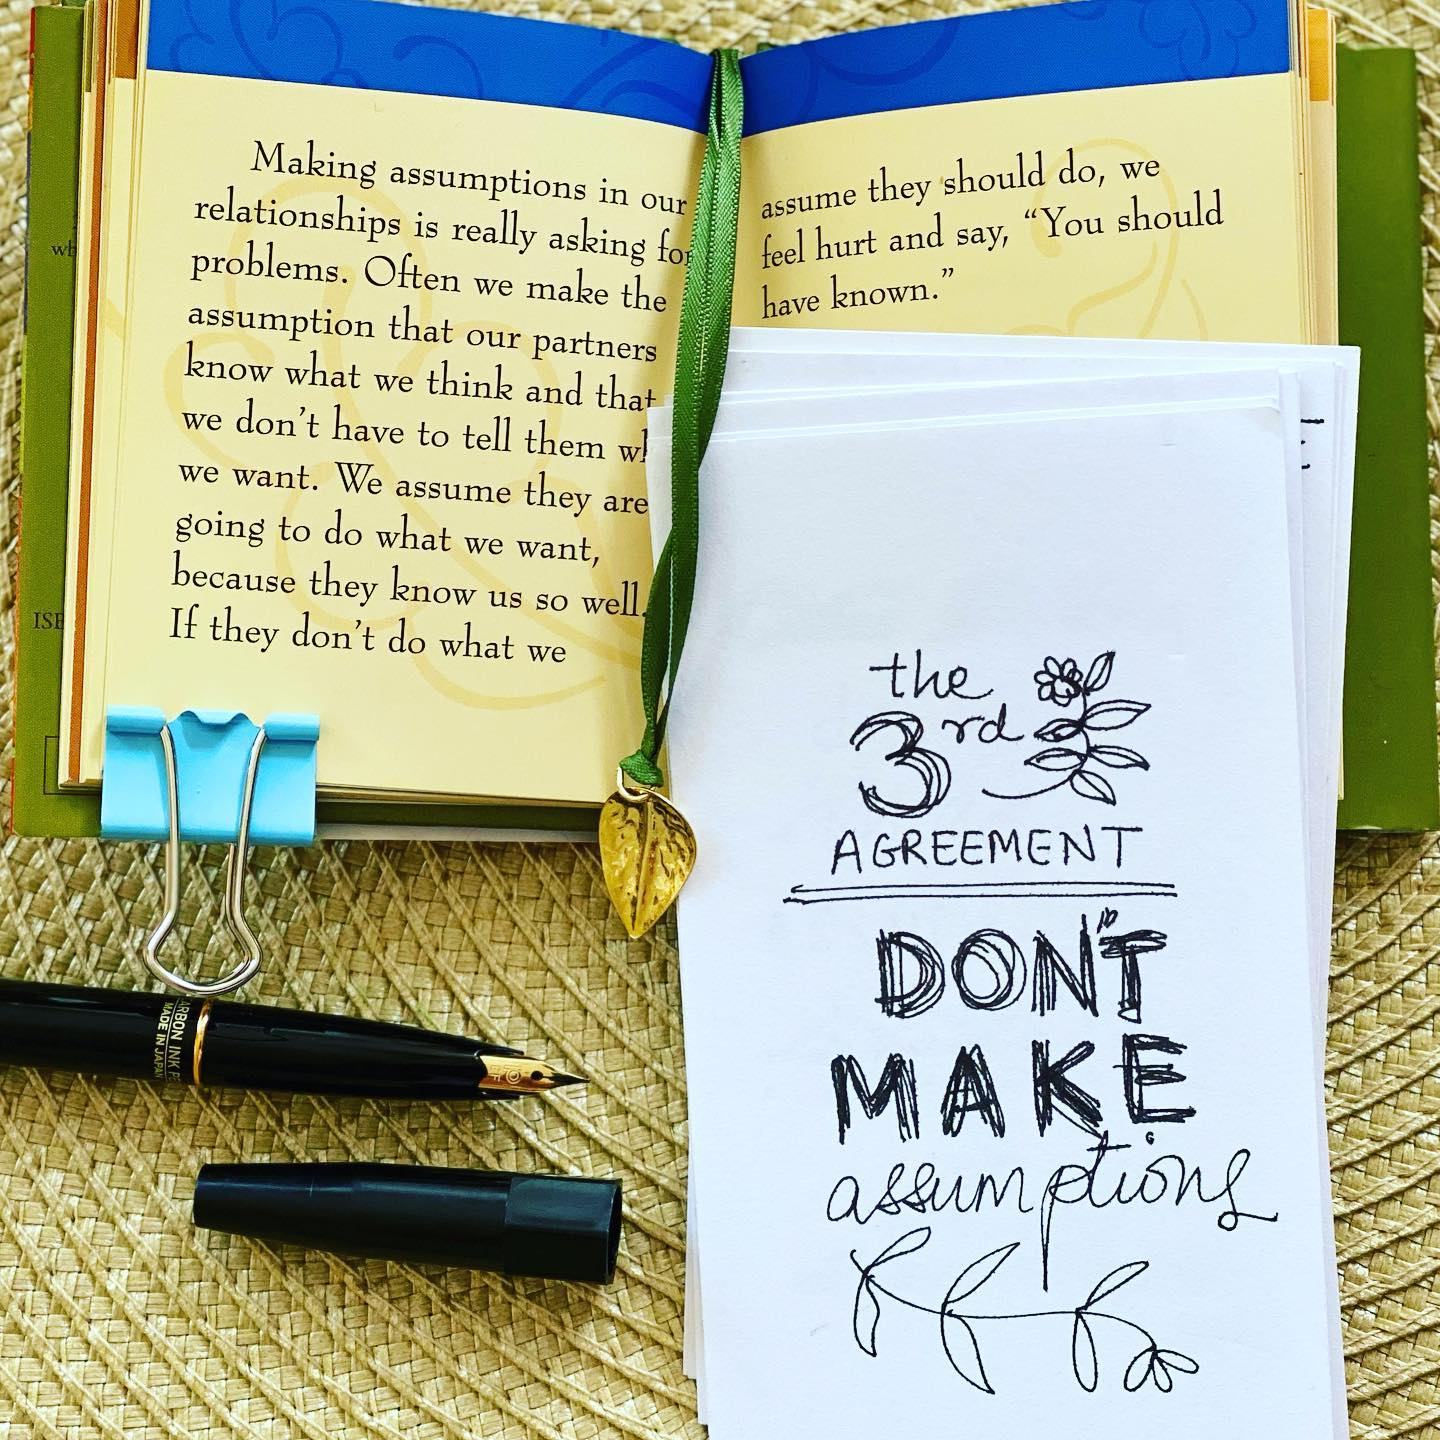 This tiny book of wisdom of the 'Four Agreements' by Don Miguel Ruiz is so full of deep insights that always serve as a ready reckoner!